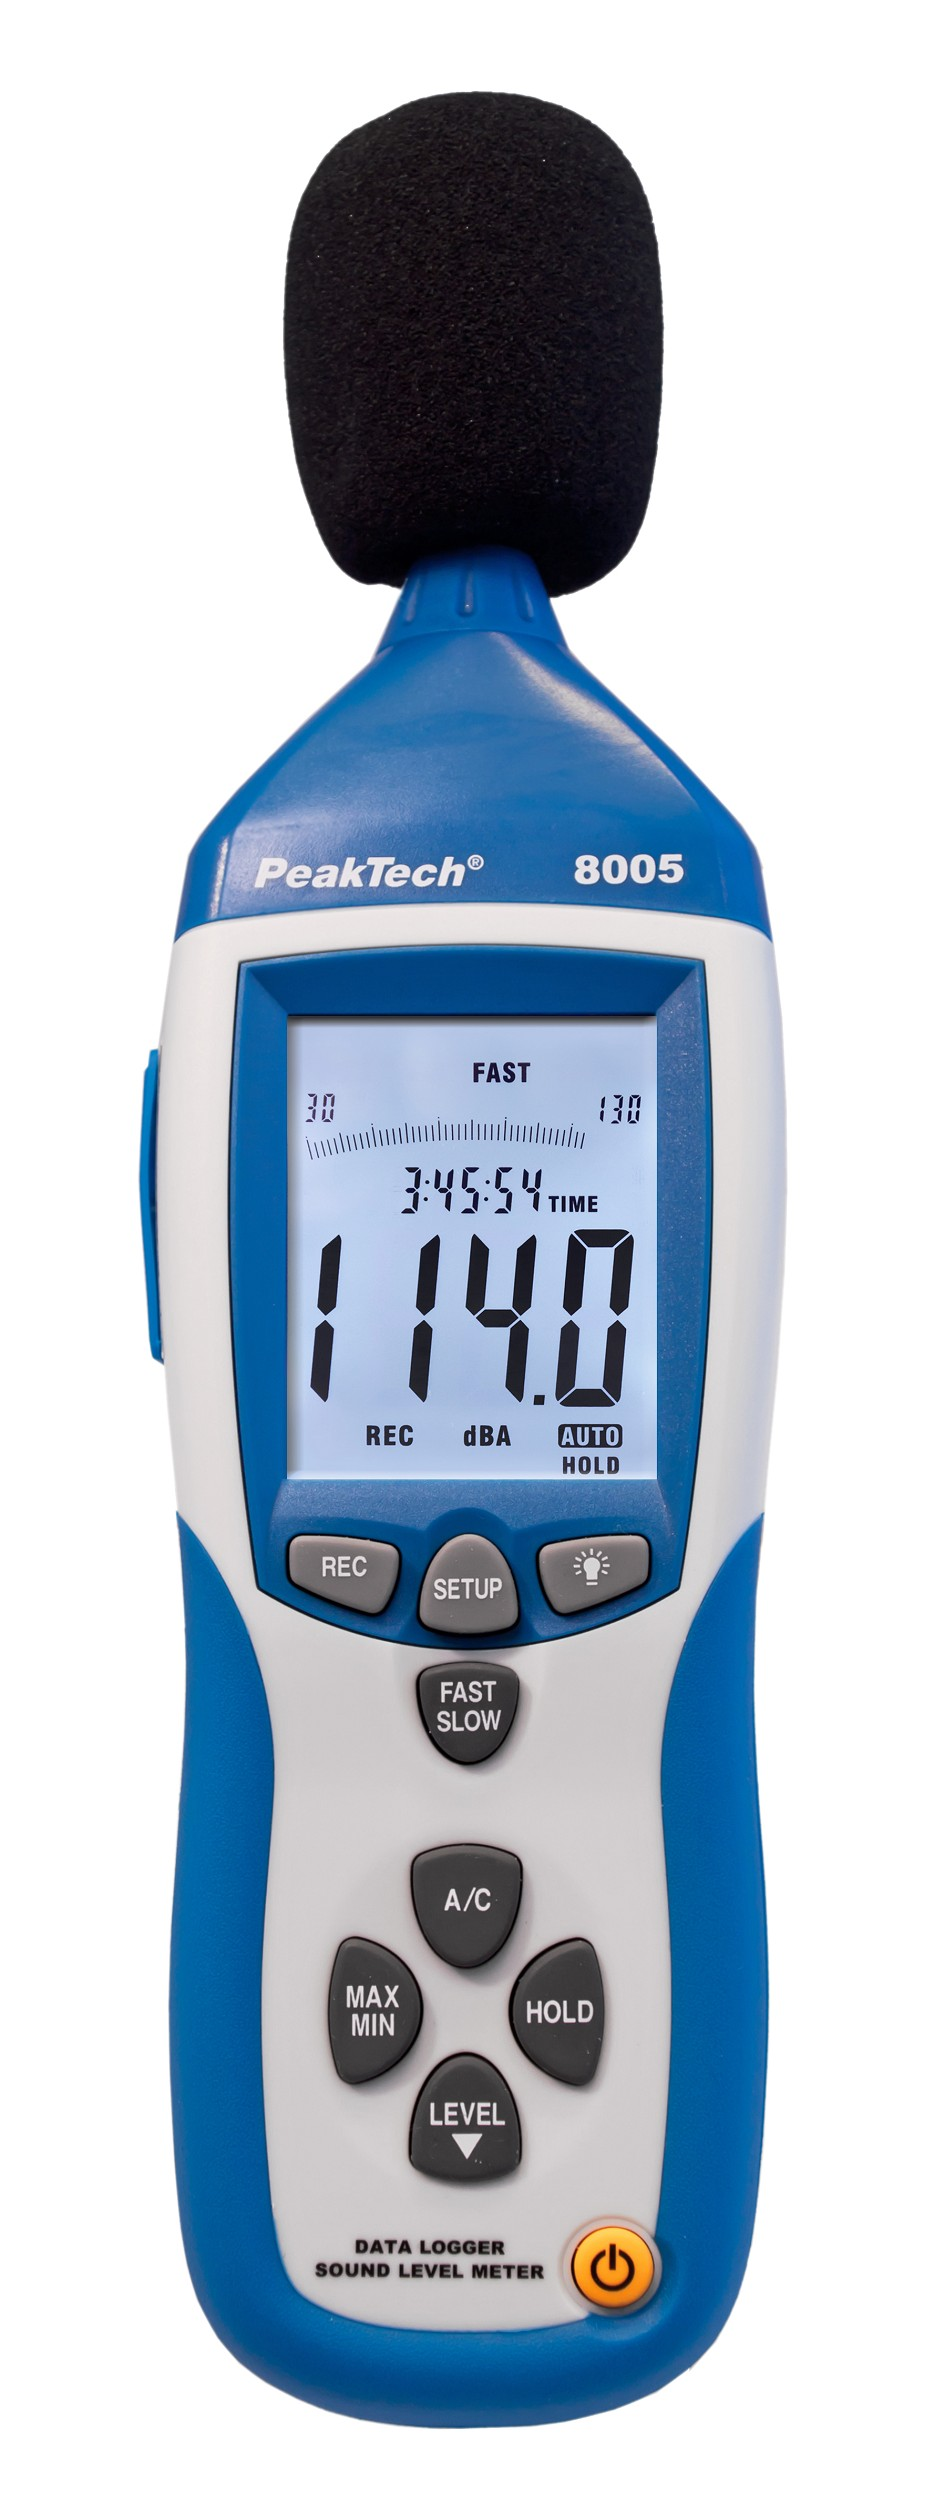 «PeakTech® P 8005» Professional Sound Level Meter with Datalogger